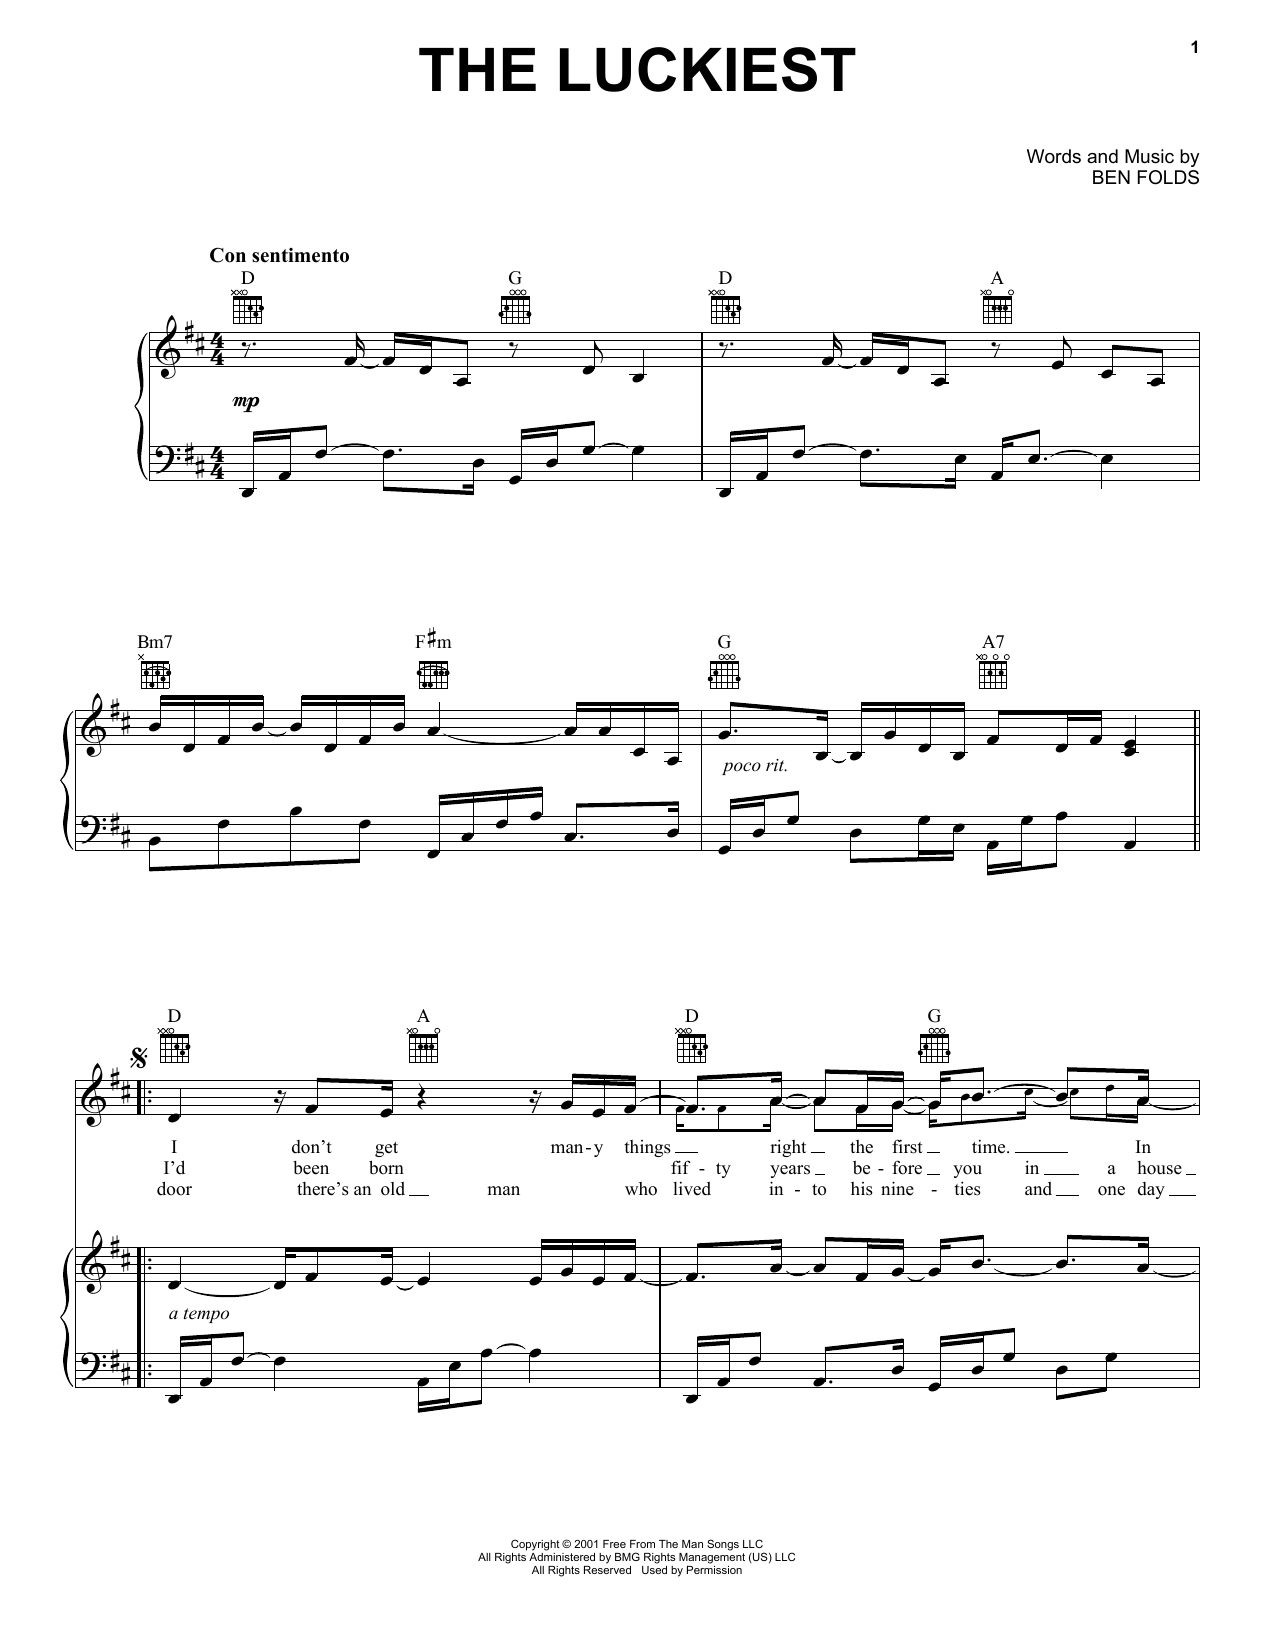 Ben Folds The Luckiest sheet music notes and chords. Download Printable PDF.